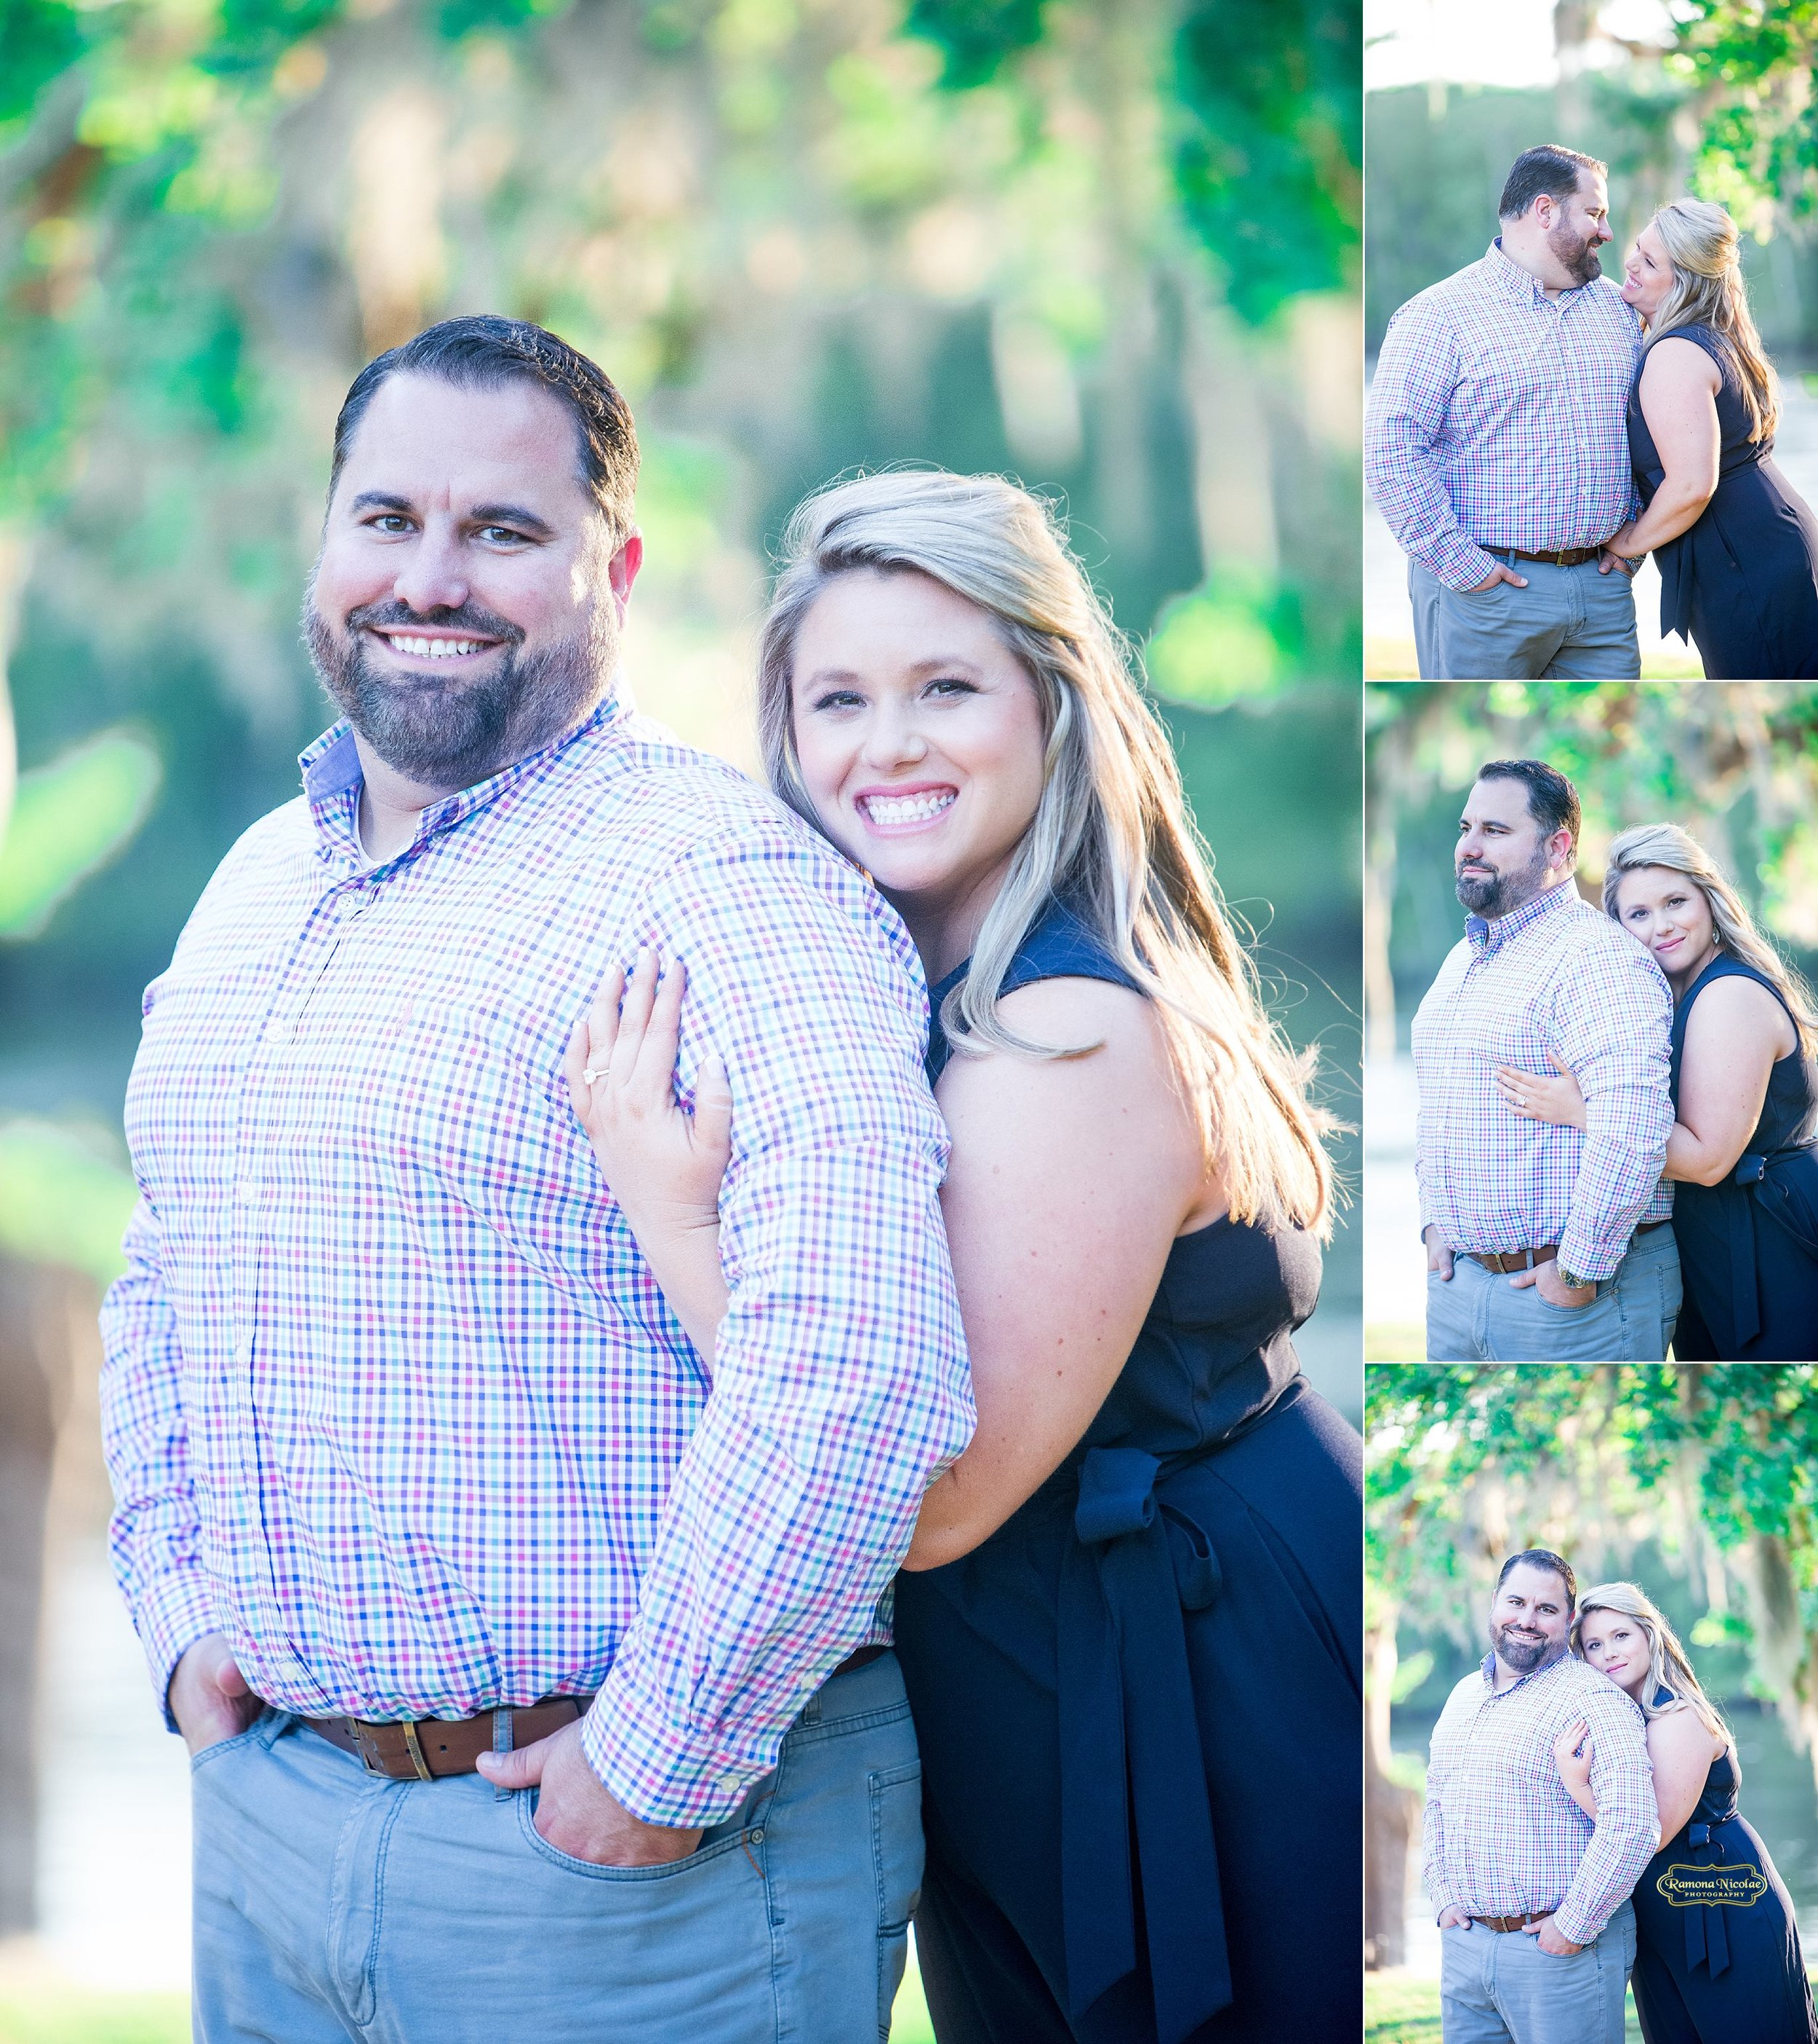 tight close hug of couple photographed by ramona nicolae in murrells inlet for engagement session.jpg